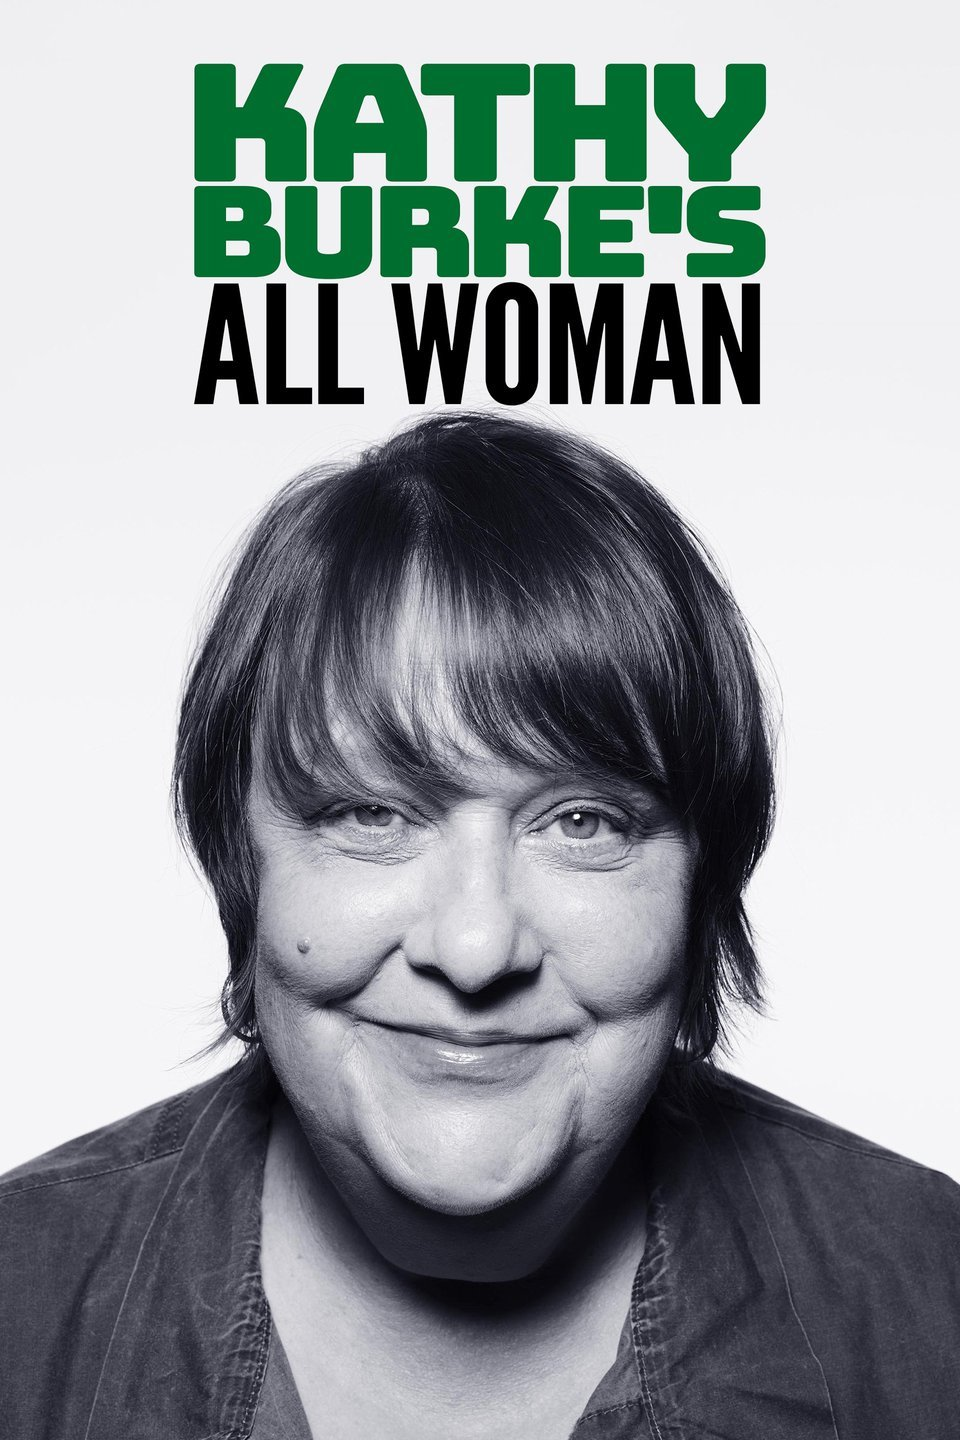 Image result for kathy burke all woman